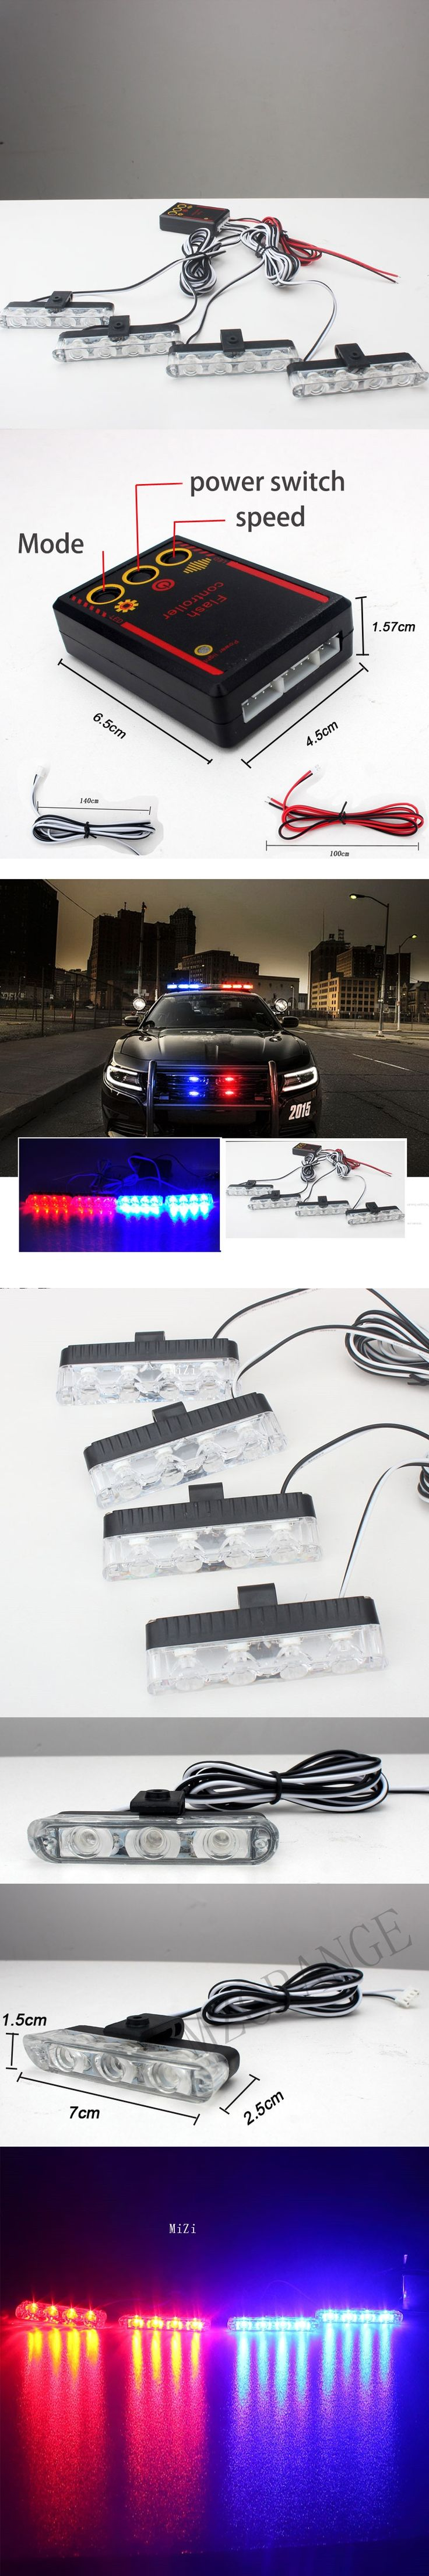 4x4LED DC 12V Strobe Warning light Police light Car Truck Light Flashing Firemen Lights Ambulance White Yellow Red Blue